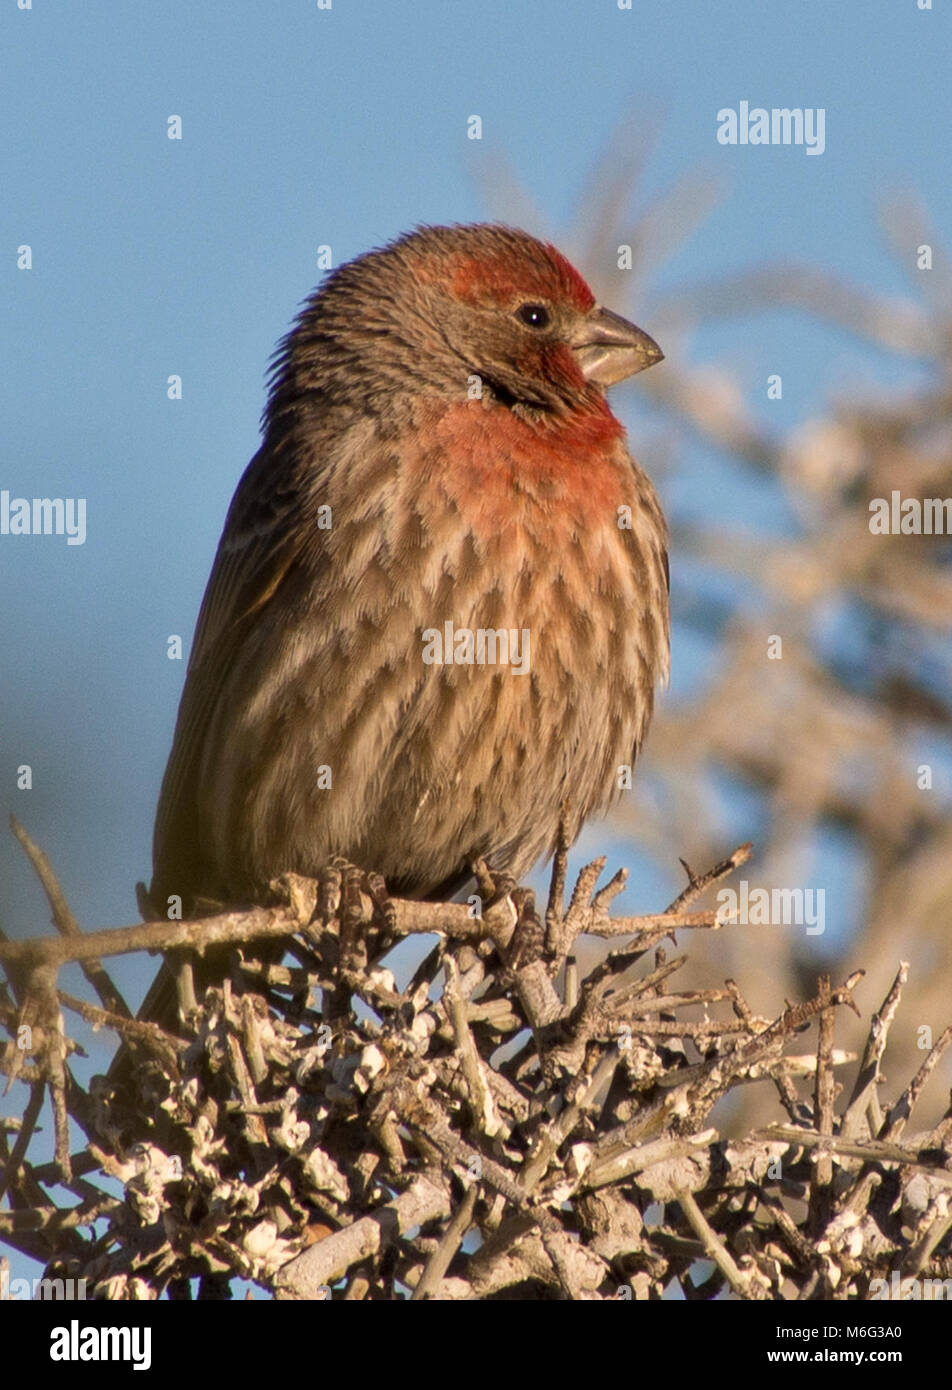 House  Finch. Stock Photo